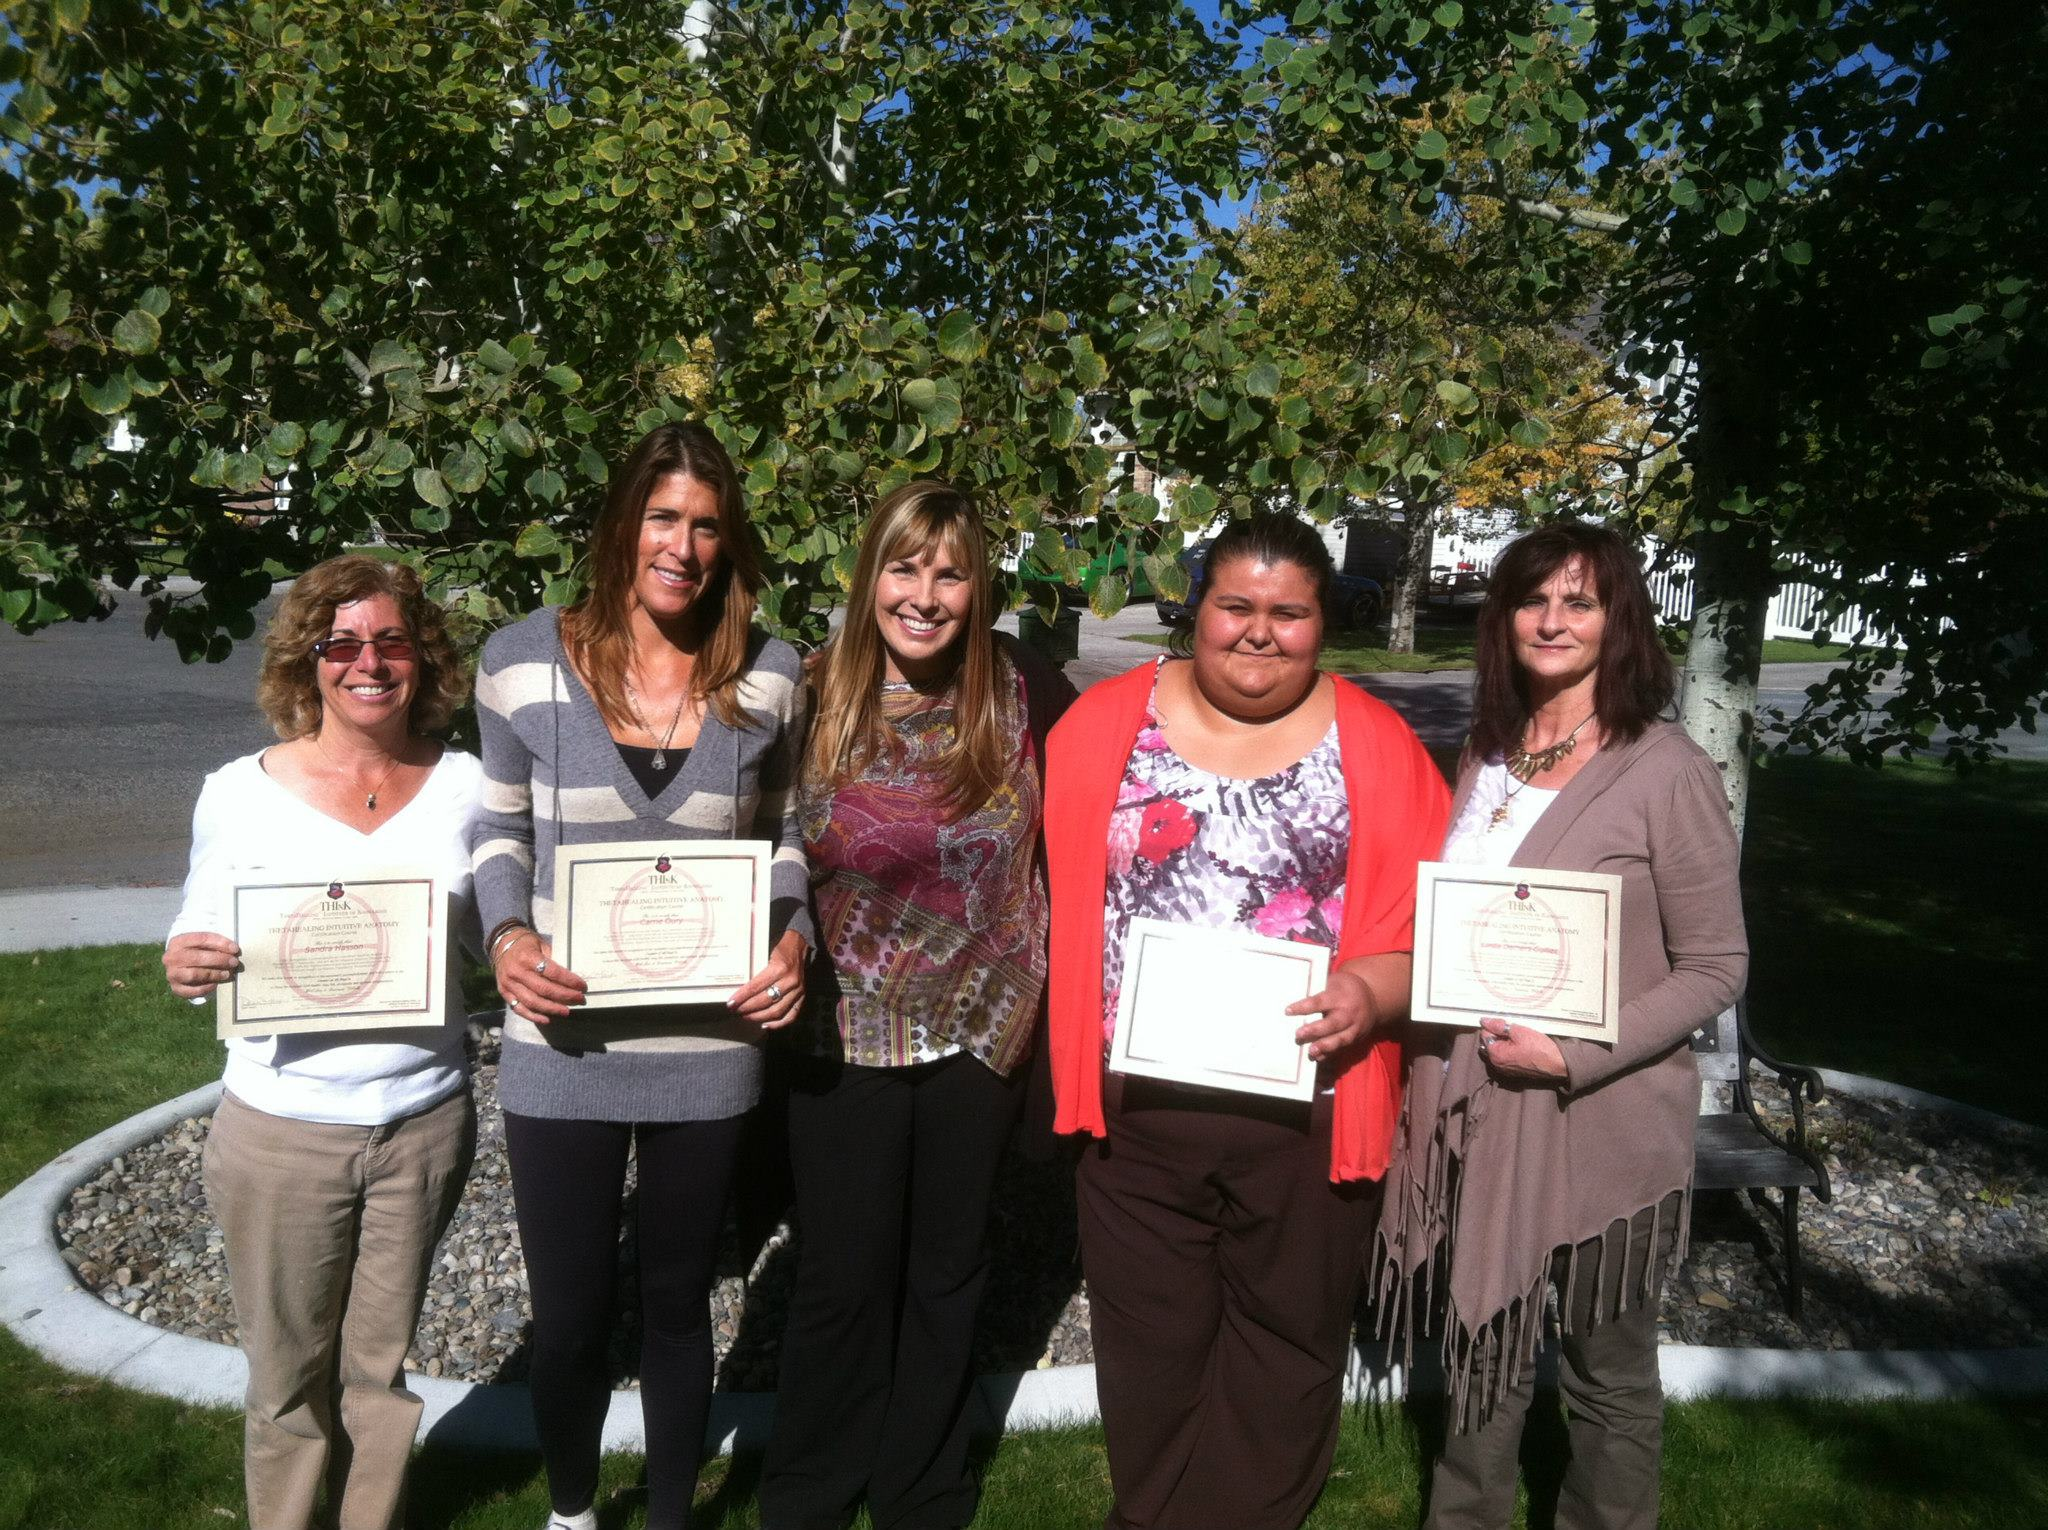 ThetaHealing Intuitive Anatomy Class instructed by Dawn Maree in Ammon, Idaho.